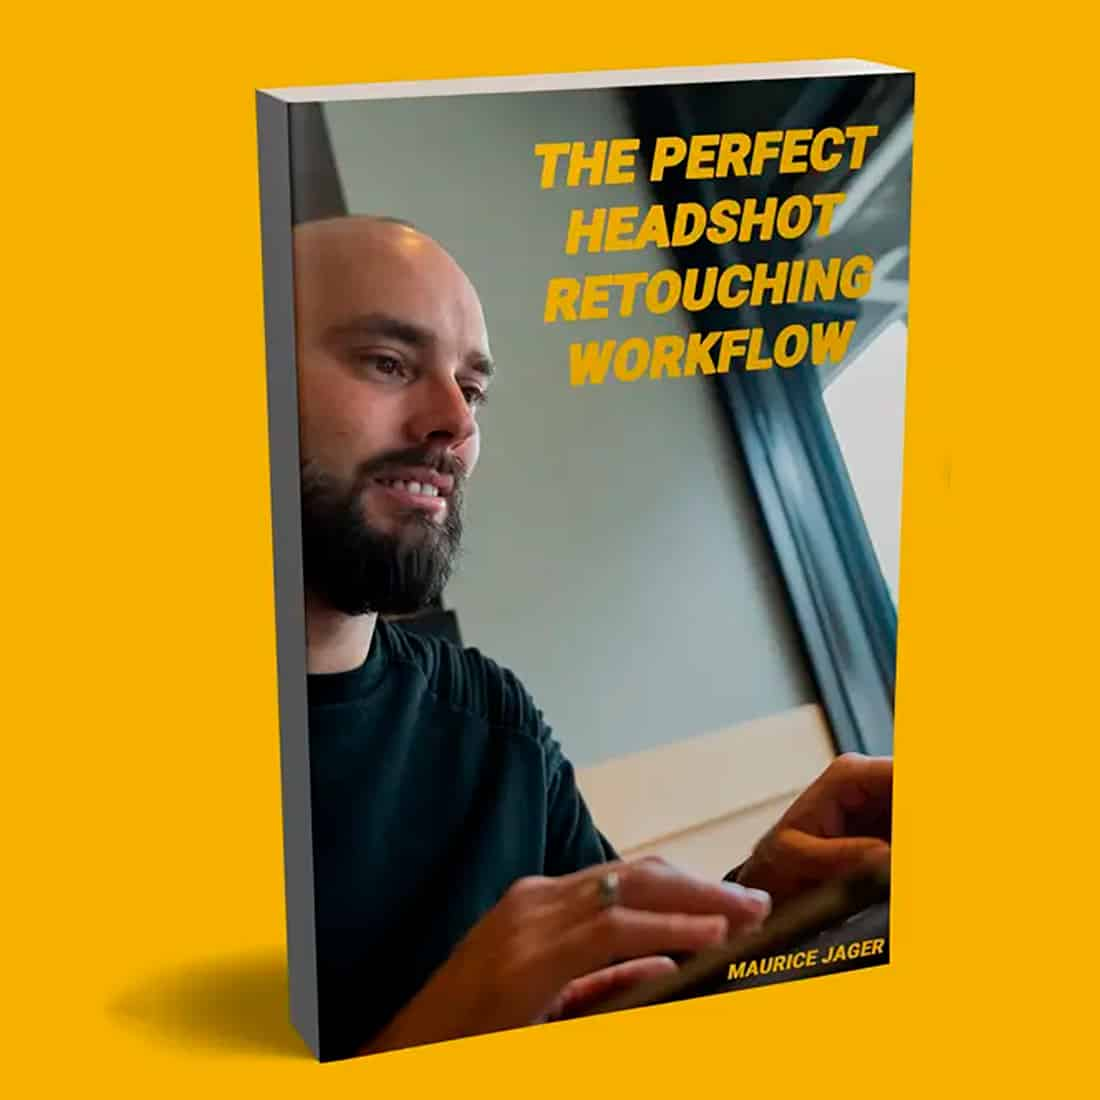 THE PERFECT HEADSHOT RETOUCHING WORKFLOW